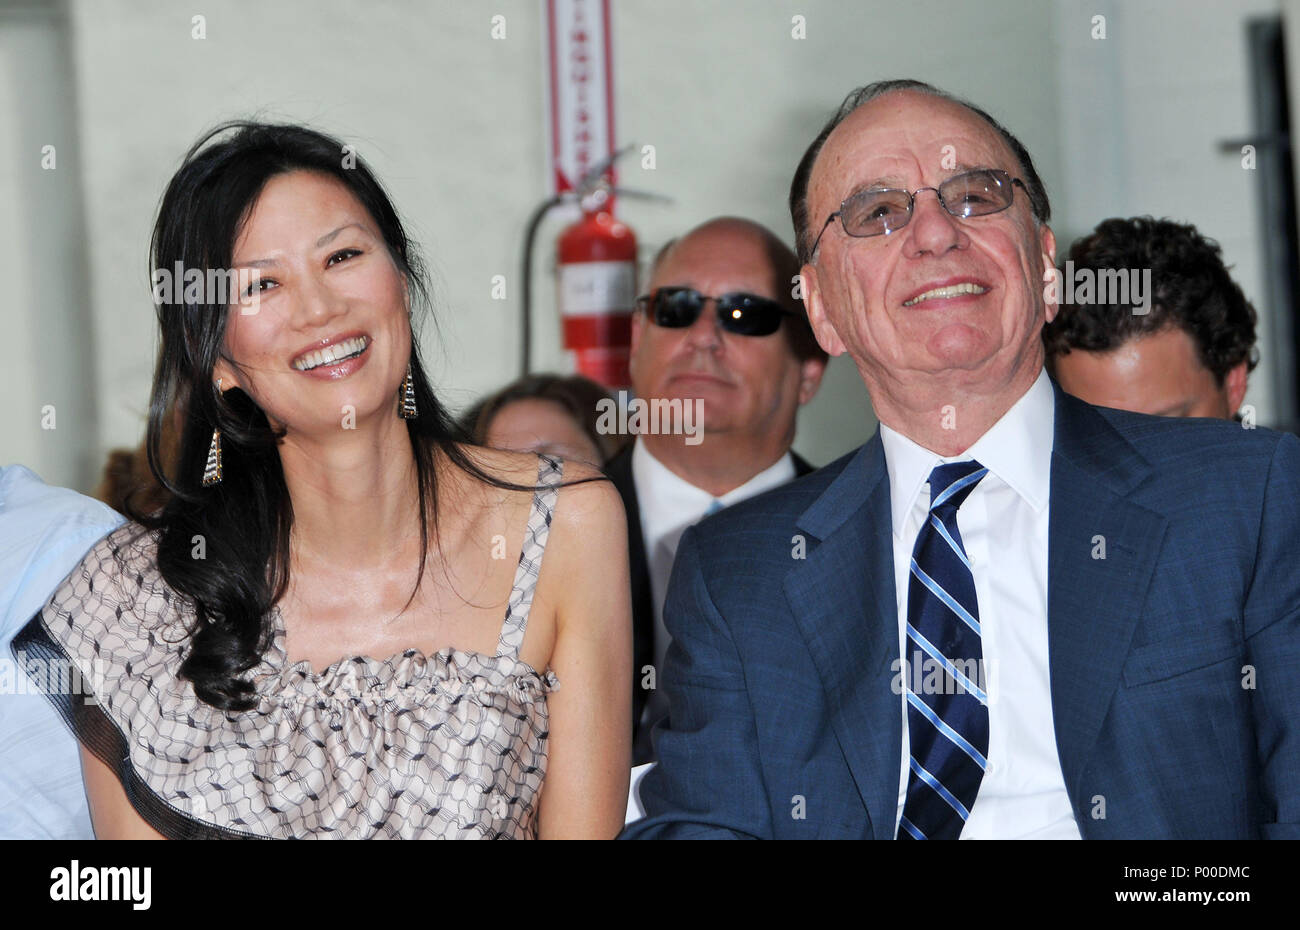 Rupert Murdoch  with wife Wendi Deng Murdoch -  Hugh Jackman Honored with hand and footprint at the Chinese Theatre in Los Angeles.MurdochRupert_Wendi Deng Murdoch_42  Event in Hollywood Life - California, Red Carpet Event, USA, Film Industry, Celebrities, Photography, Bestof, Arts Culture and Entertainment, Celebrities fashion, Best of, Hollywood Life, Event in Hollywood Life - California, Red Carpet and backstage, Music celebrities, Topix, Couple, family ( husband and wife ) and kids- Children, brothers and sisters inquiry tsuni@Gamma-USA.com, Credit Tsuni / USA, 2006 to 2009 - Stock Image